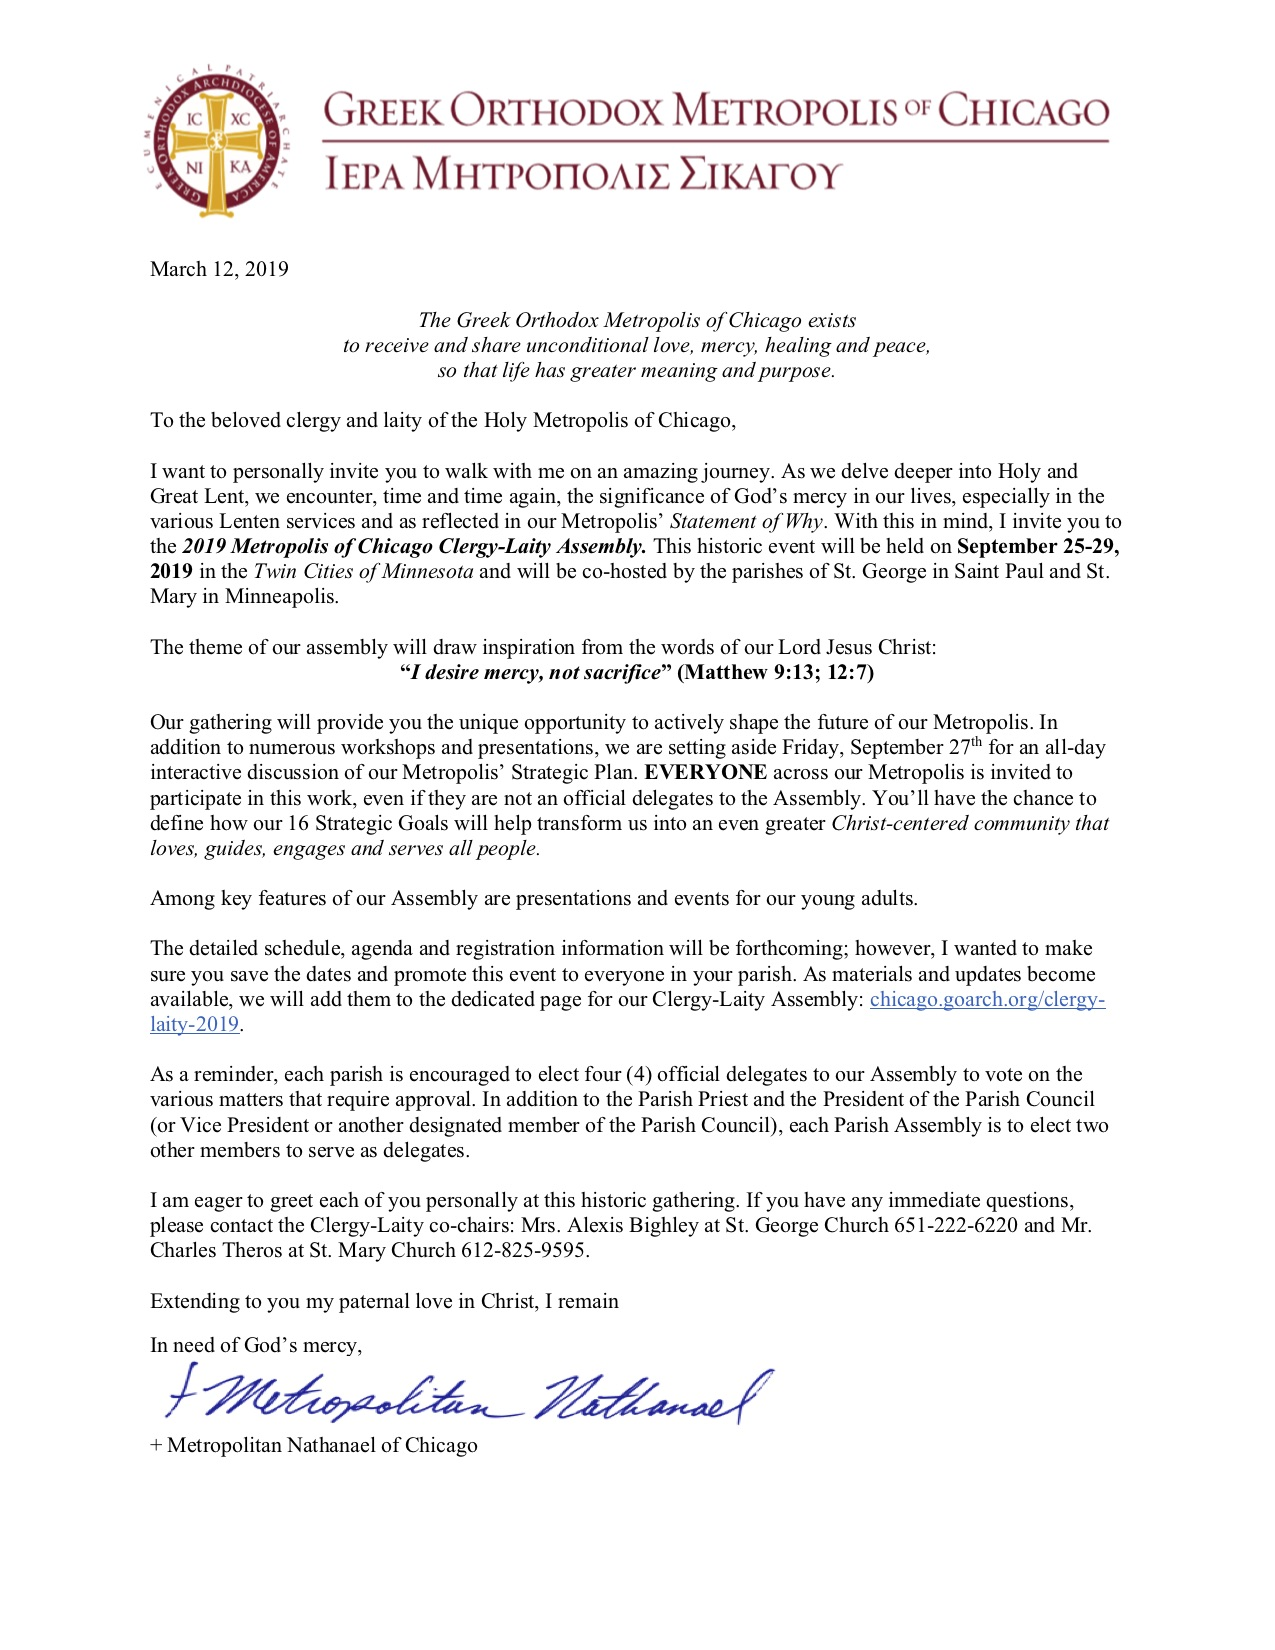 clergy-laity 2019 invite ltr from met nathanael.jpg